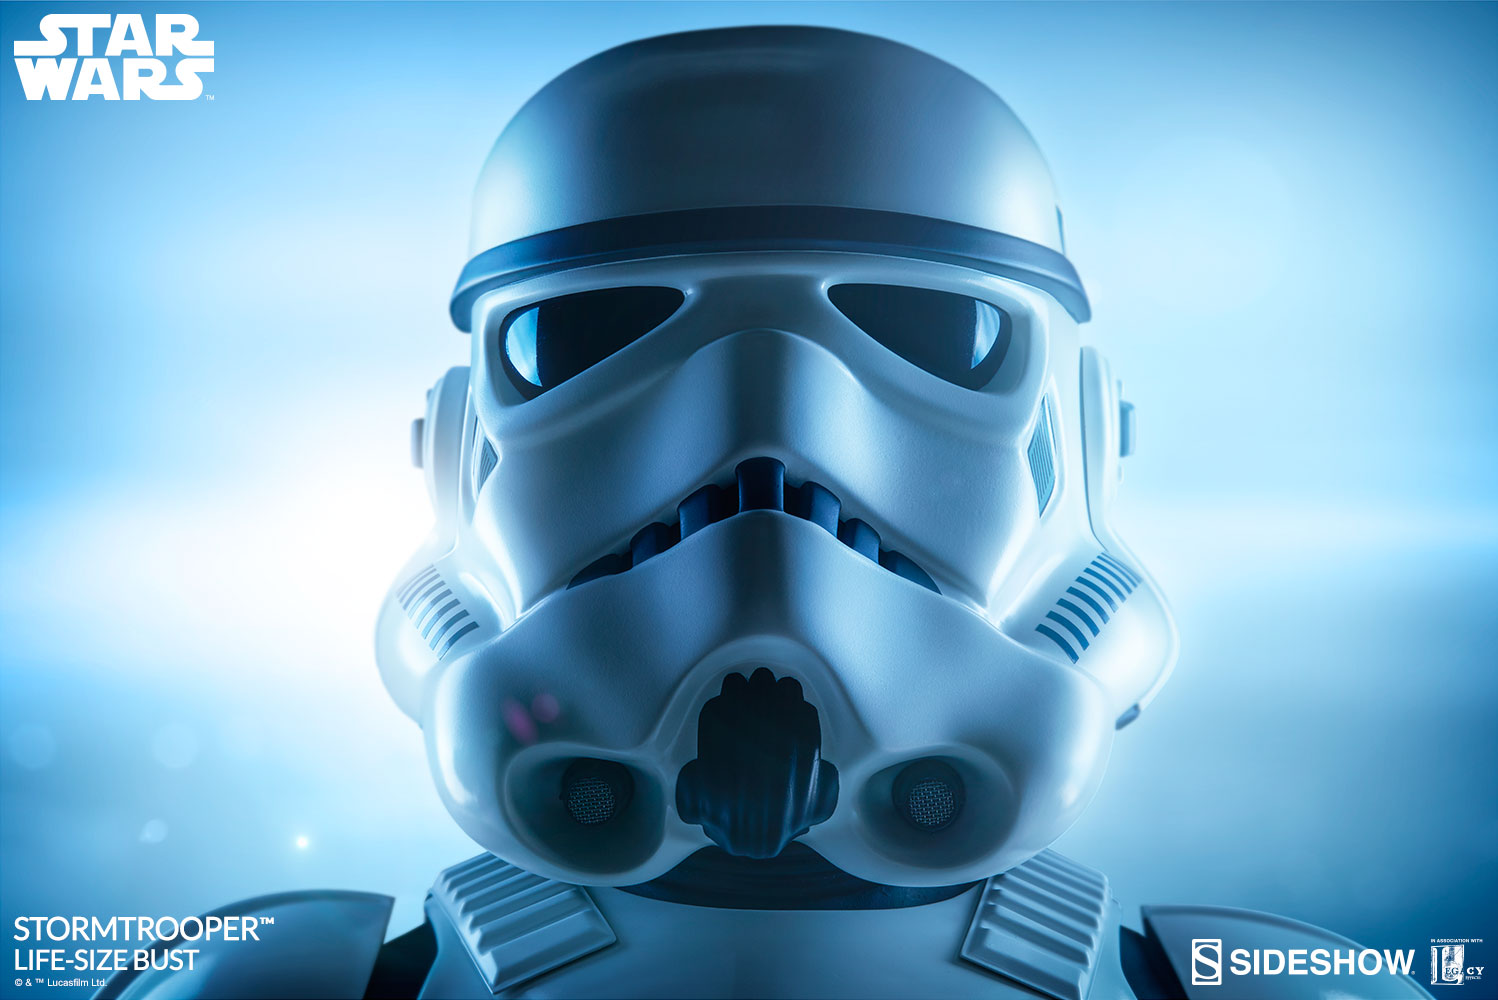 star wars stormtrooper life size bust by sideshow collectibl sideshow collectibles. Black Bedroom Furniture Sets. Home Design Ideas